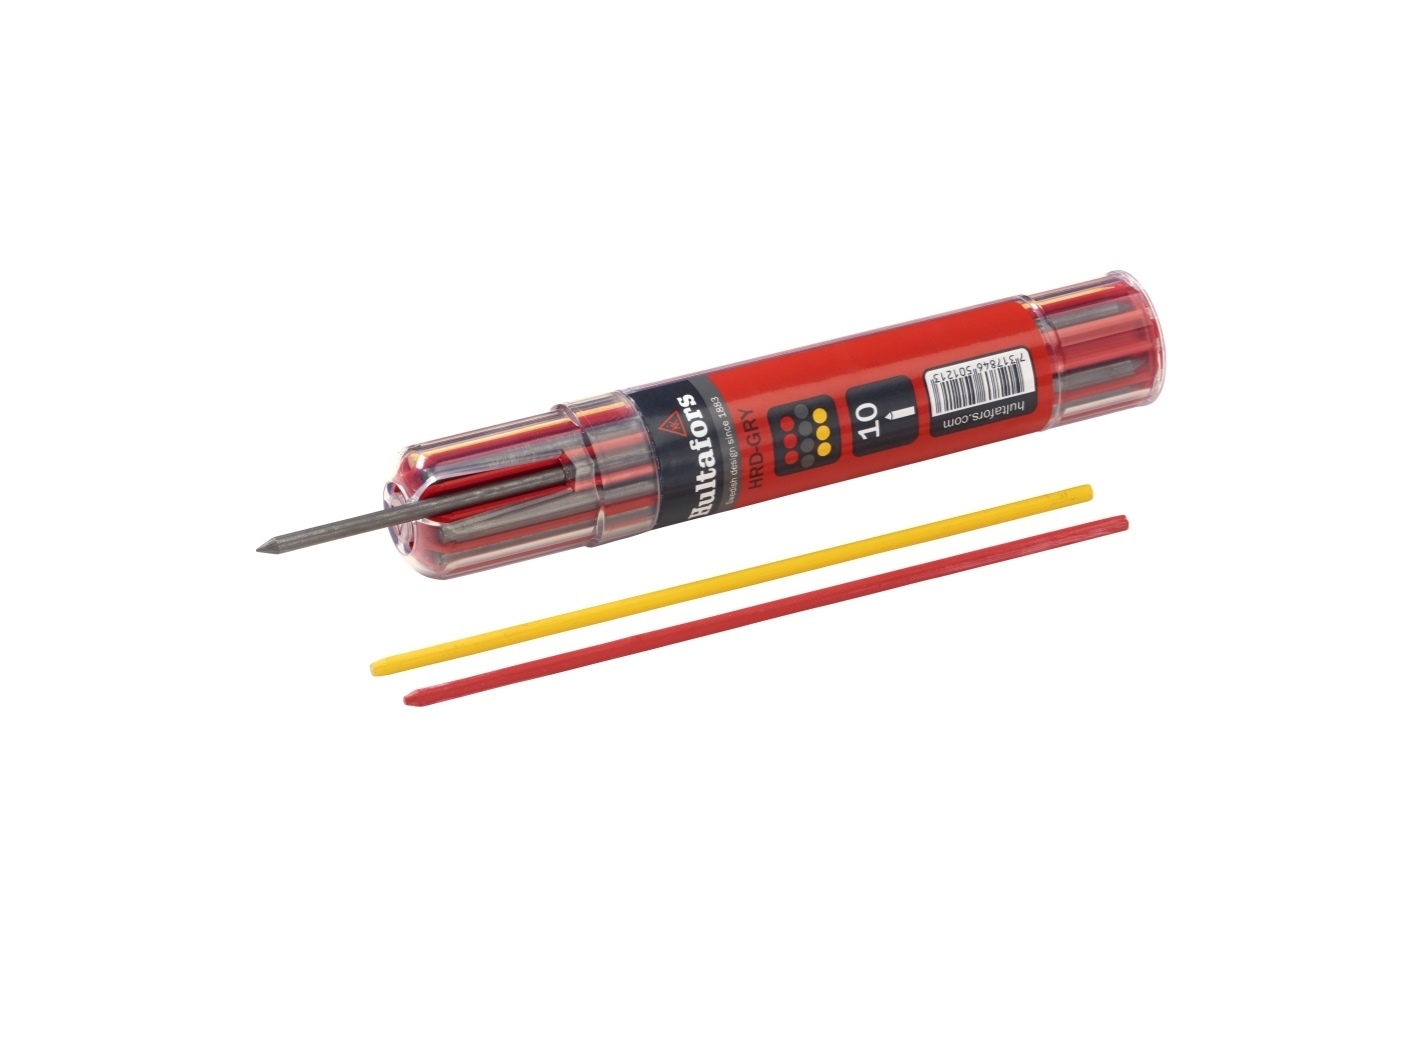 Hultafors Dry Marker Refills—Graphite and Chalk (Red and Yellow) HU-650120